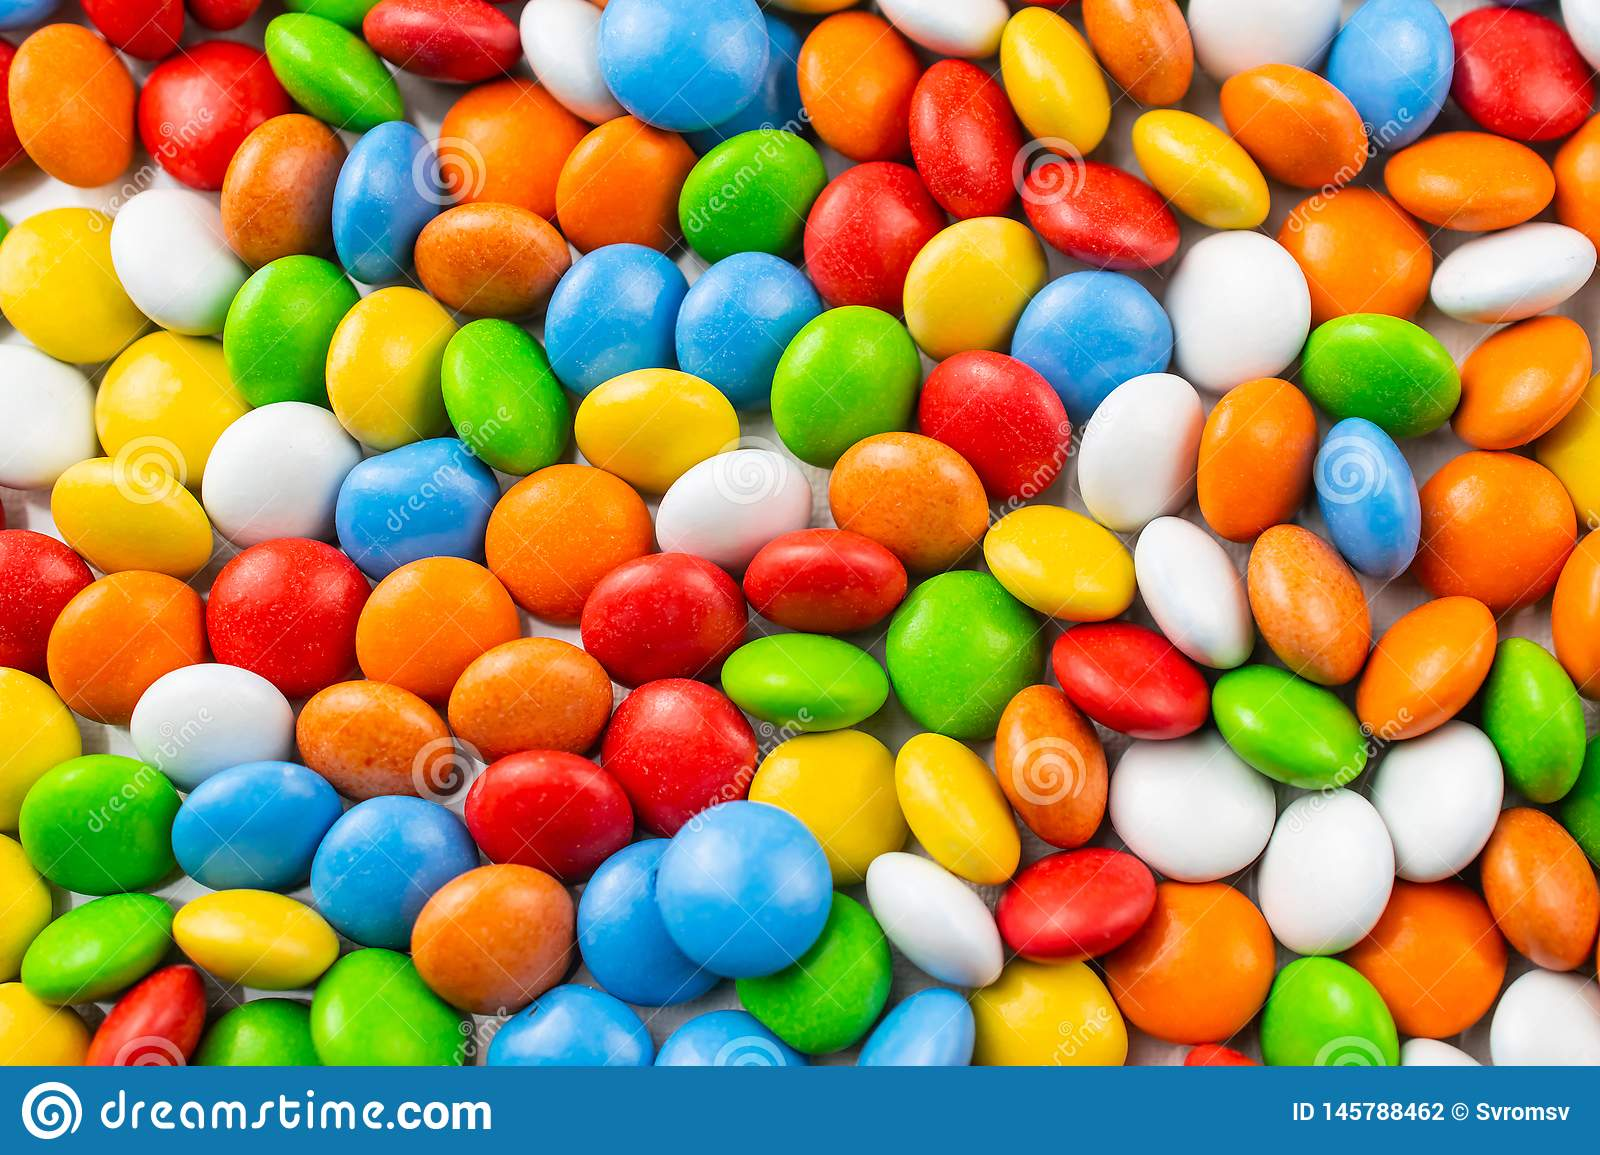 Bright colorfull background with glazed candies